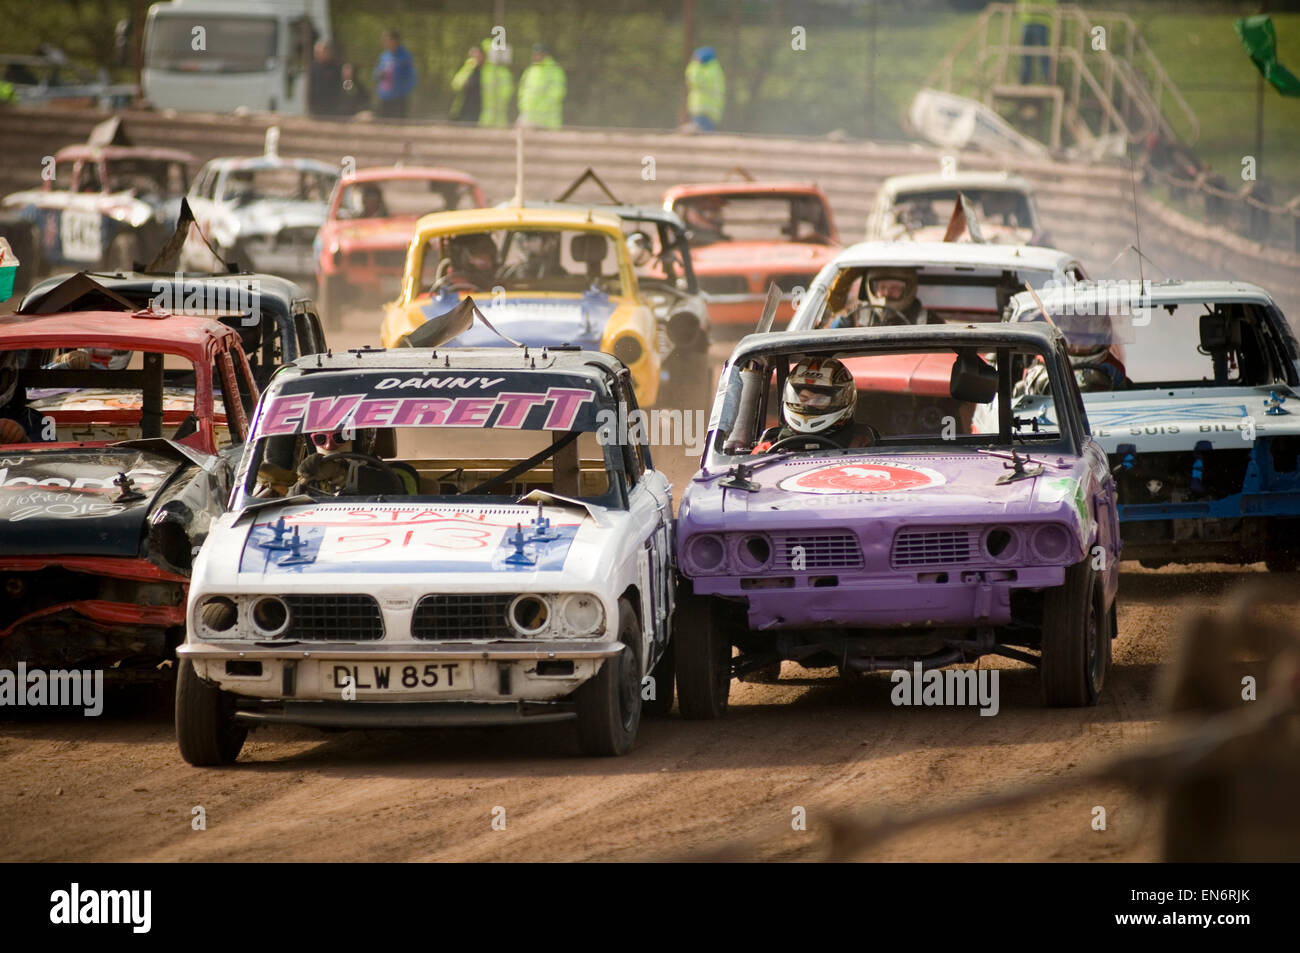 banger race racing races old car cars scrap junk stock car cars ...